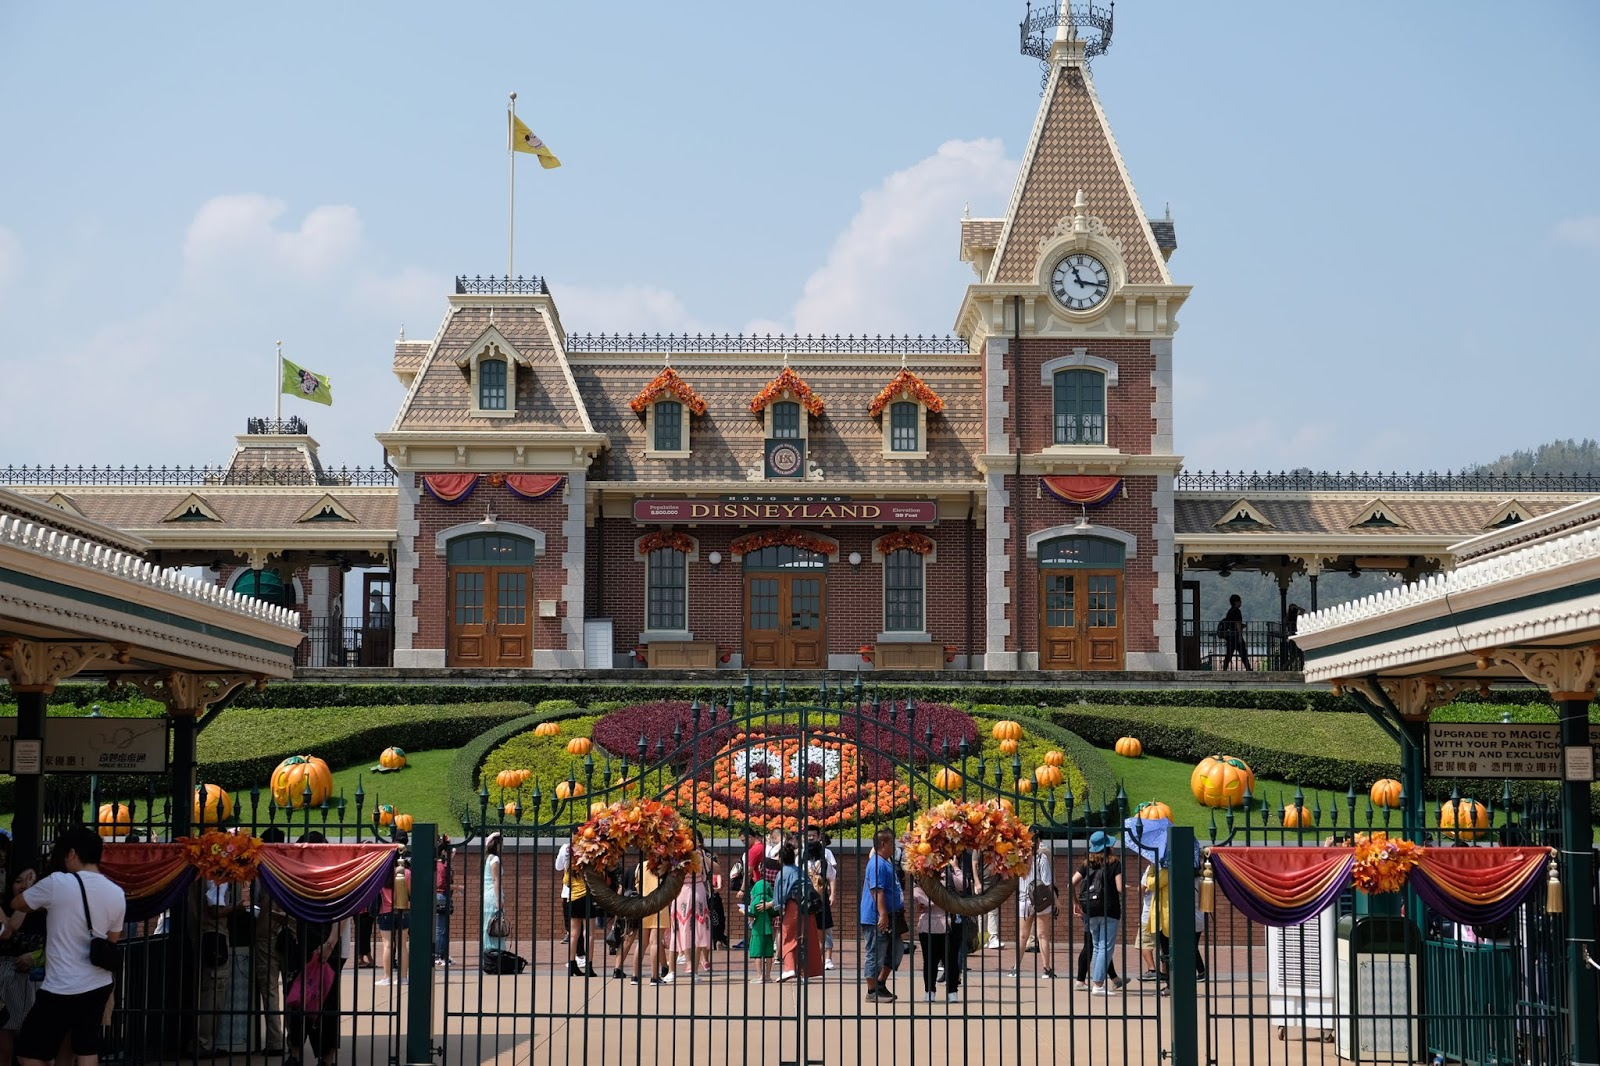 Entrance to Hong Kong Disneyland during Halloween season